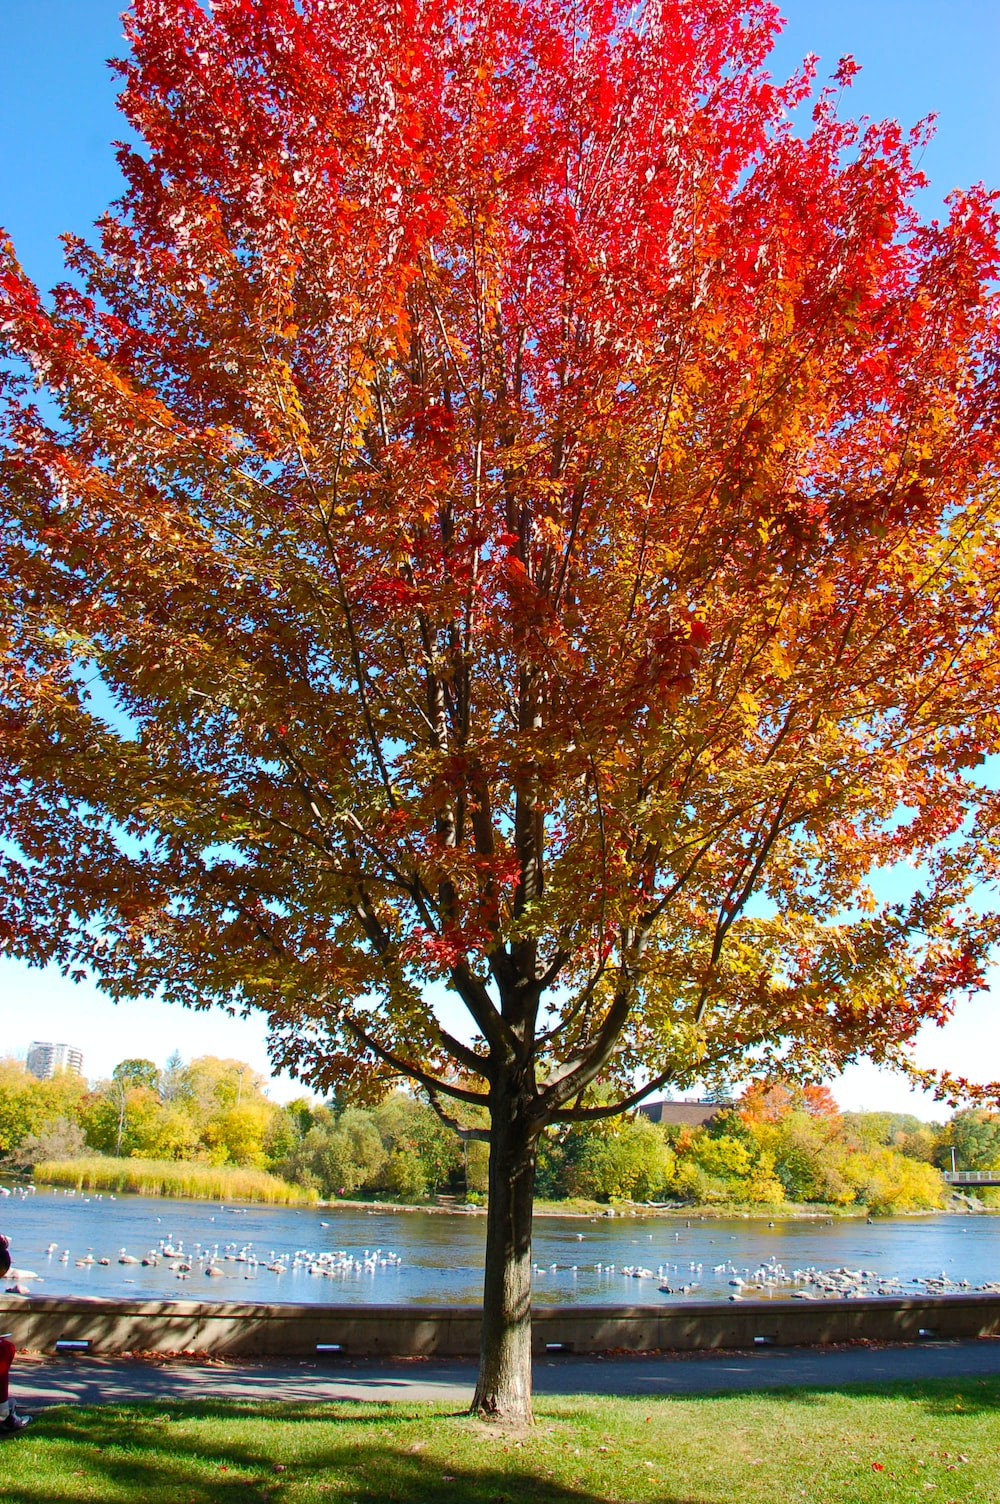 red and brown leafed tree